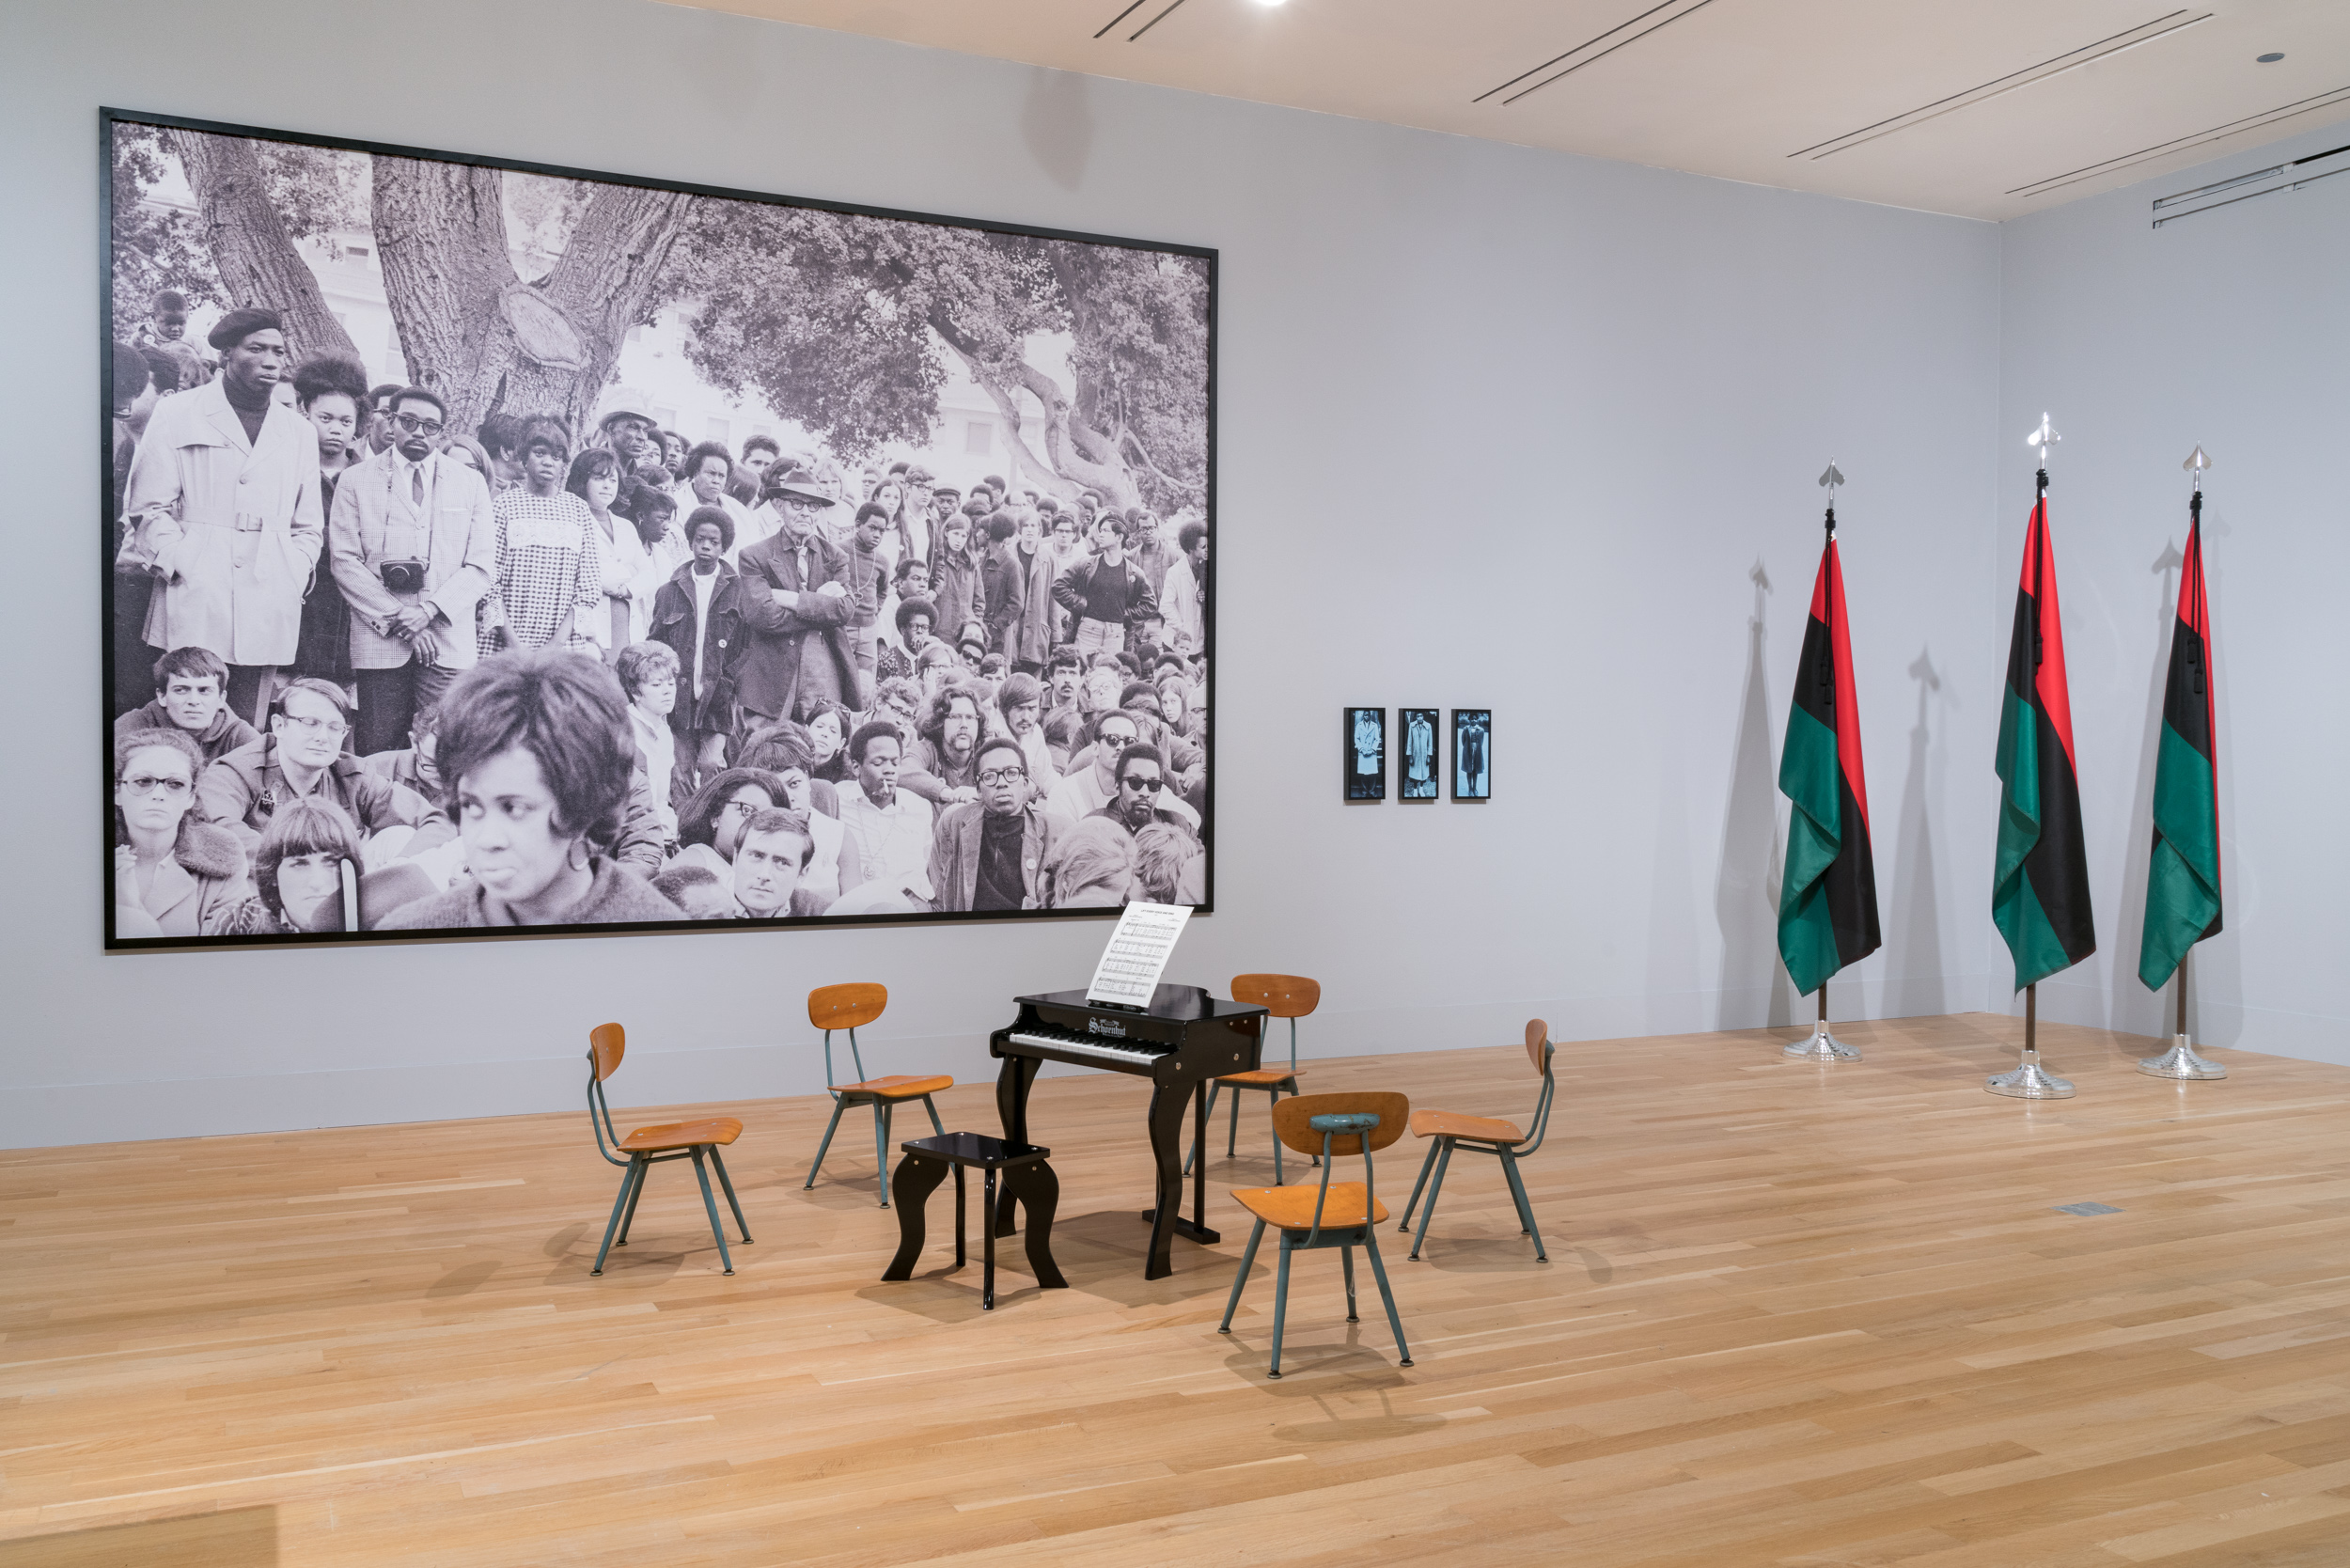 Gallery installation with a small piano, three flags, and a large scale photograph.